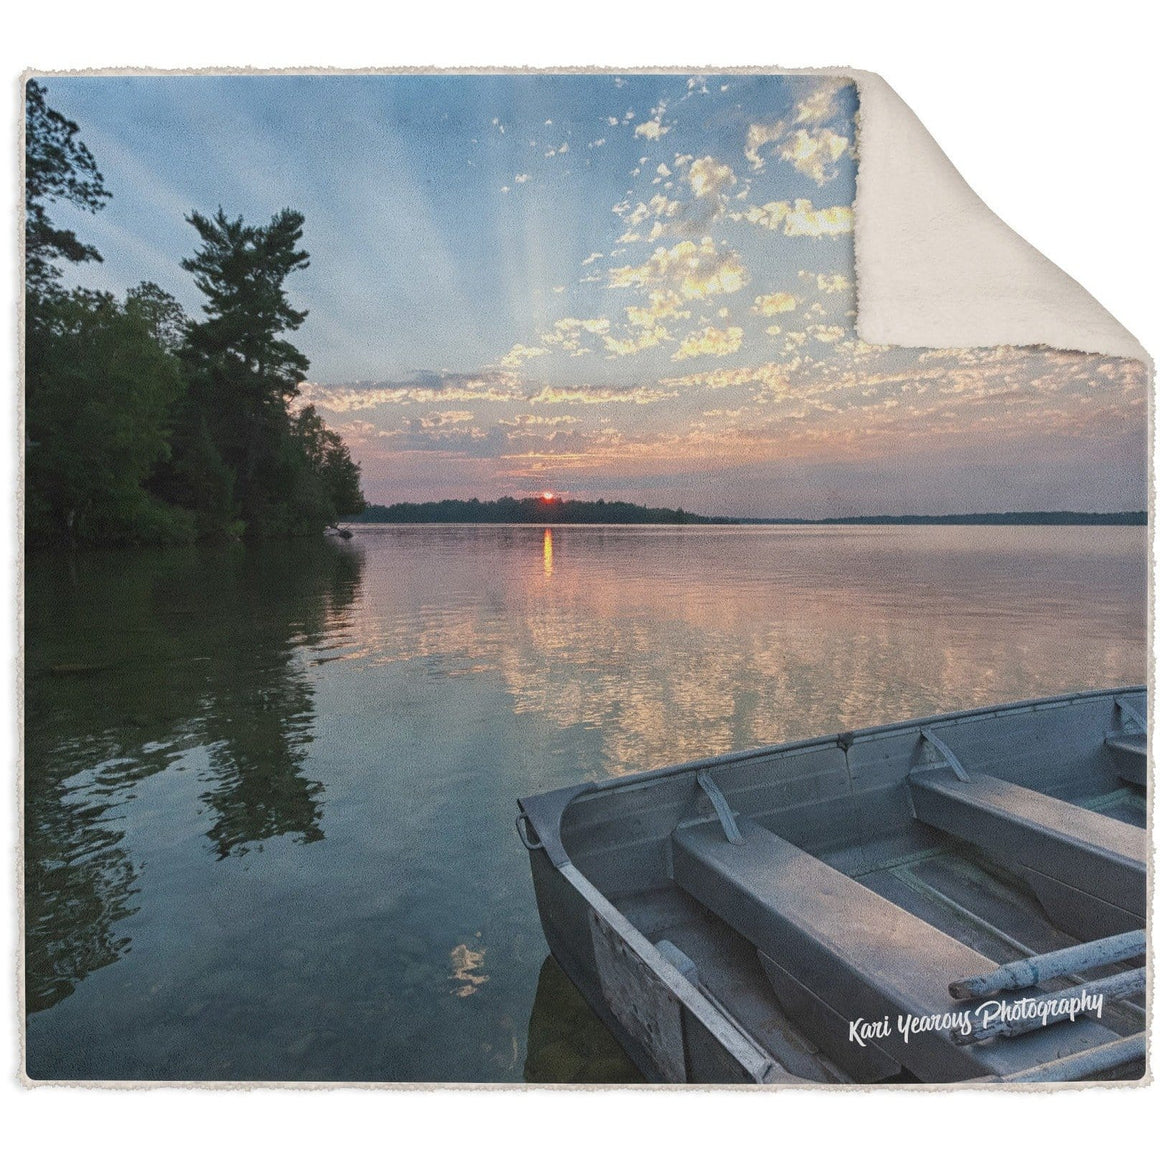 Blanket, Fleece Sherpa, Sunset Beams At Deer Lake - Kari Yearous Photography WinonaGifts KetoGifts LoveDecorah